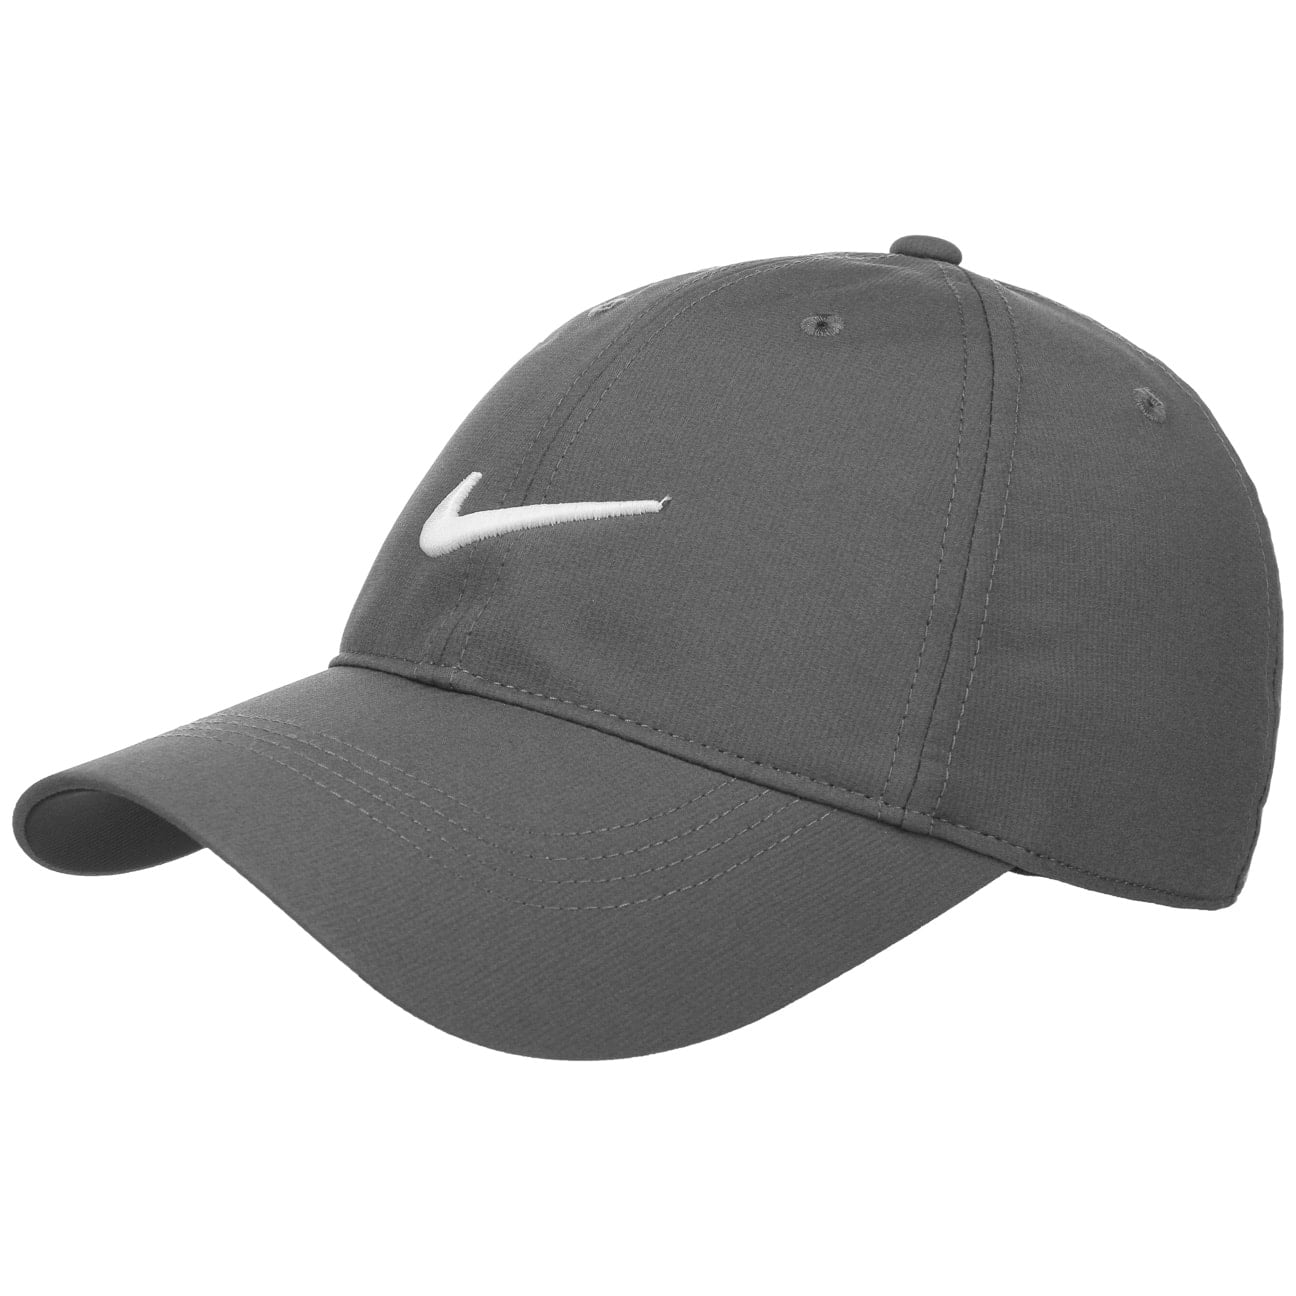 Legacy91 Tech Cap By Nike Eur 26 99 Hats Caps Beanies Shop